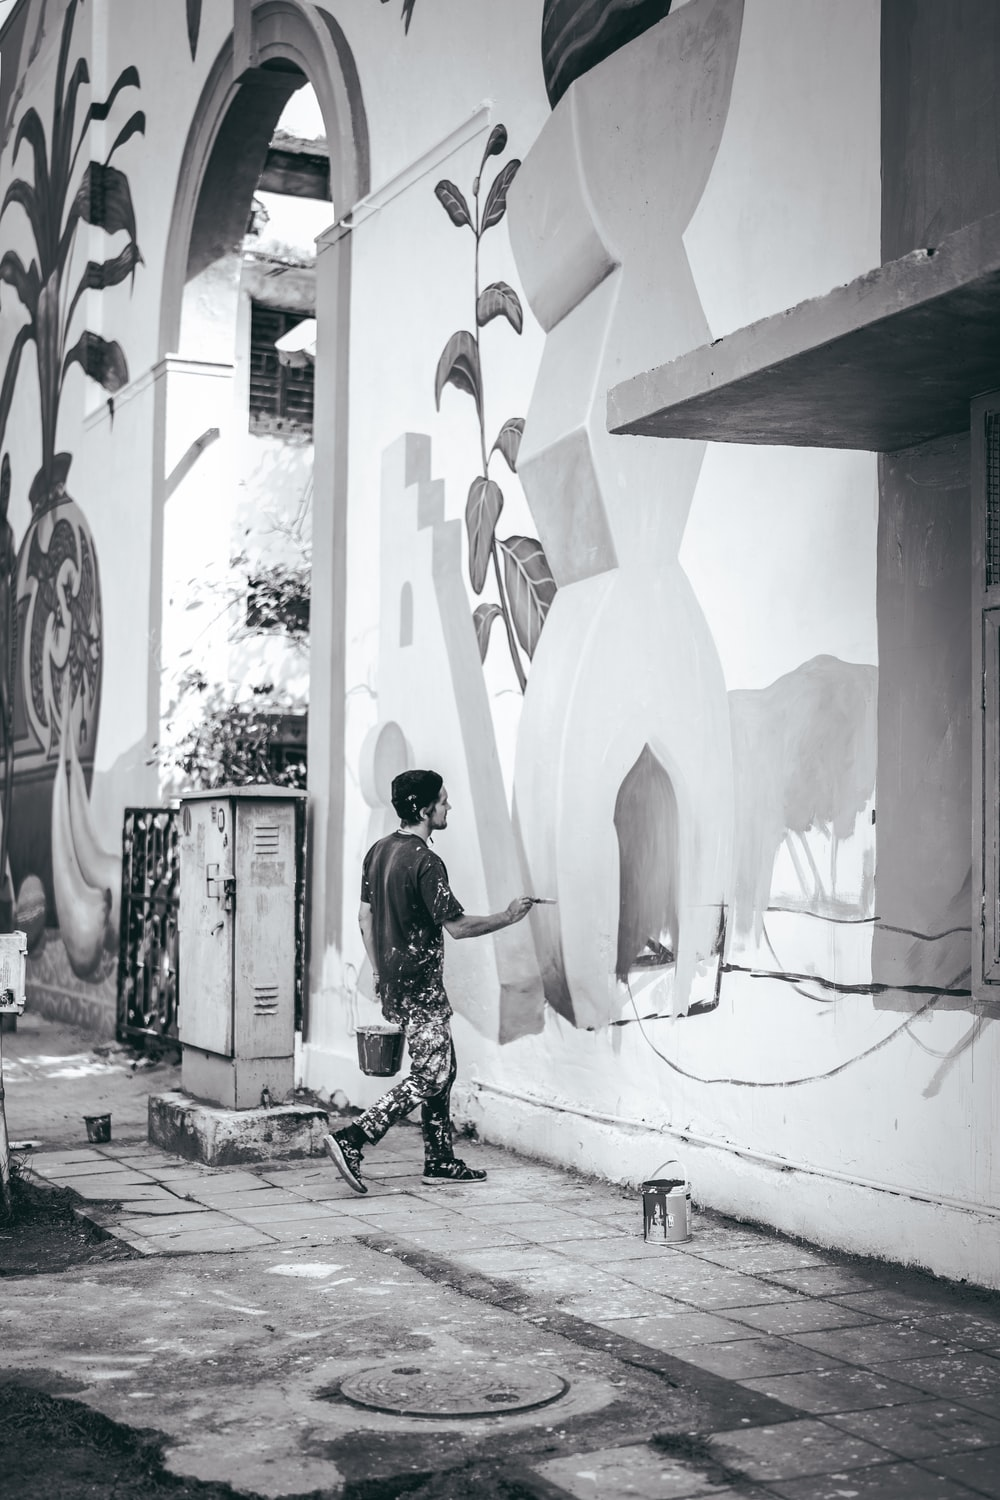 greyscale photo of man painting on wall